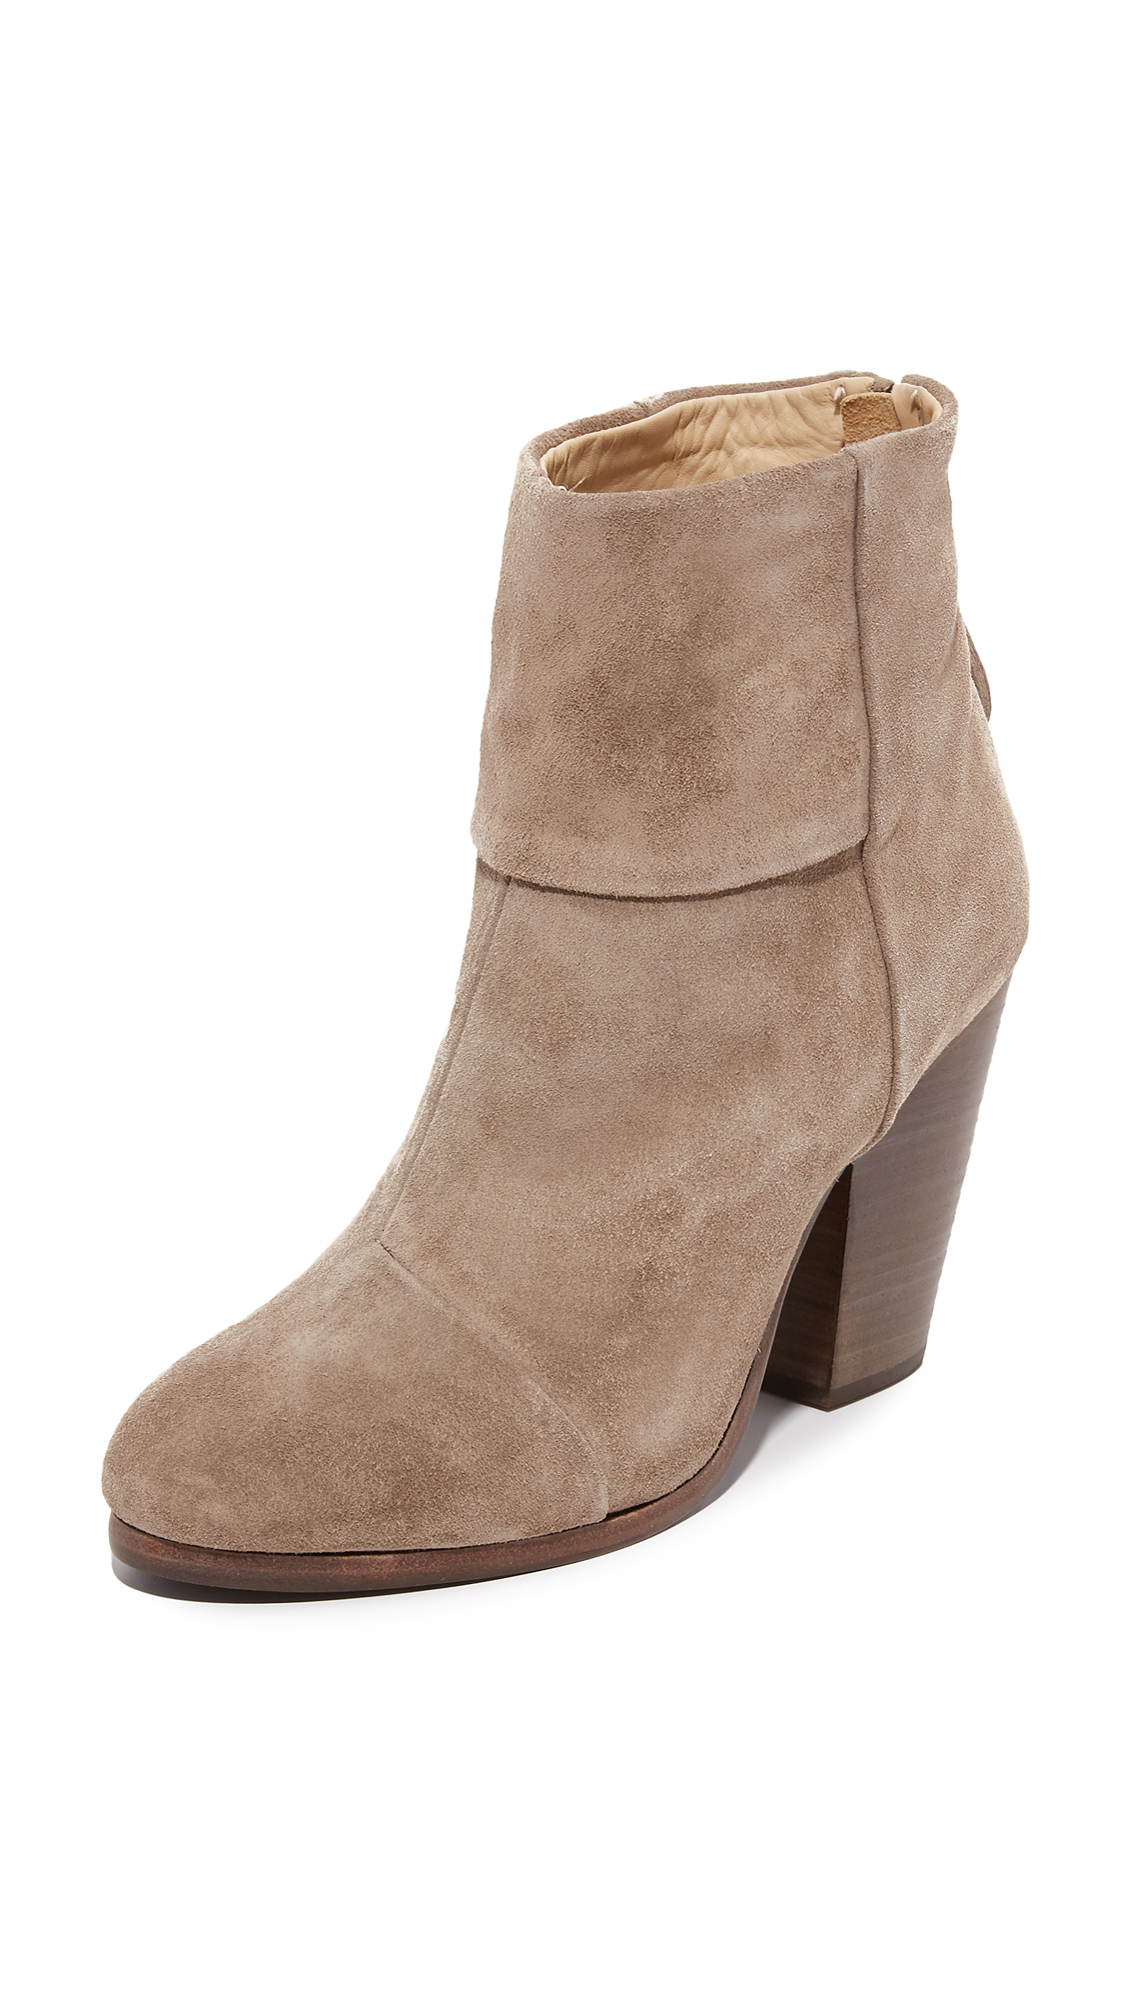 Rag & Bone Classic Newbury Booties - Warm Grey